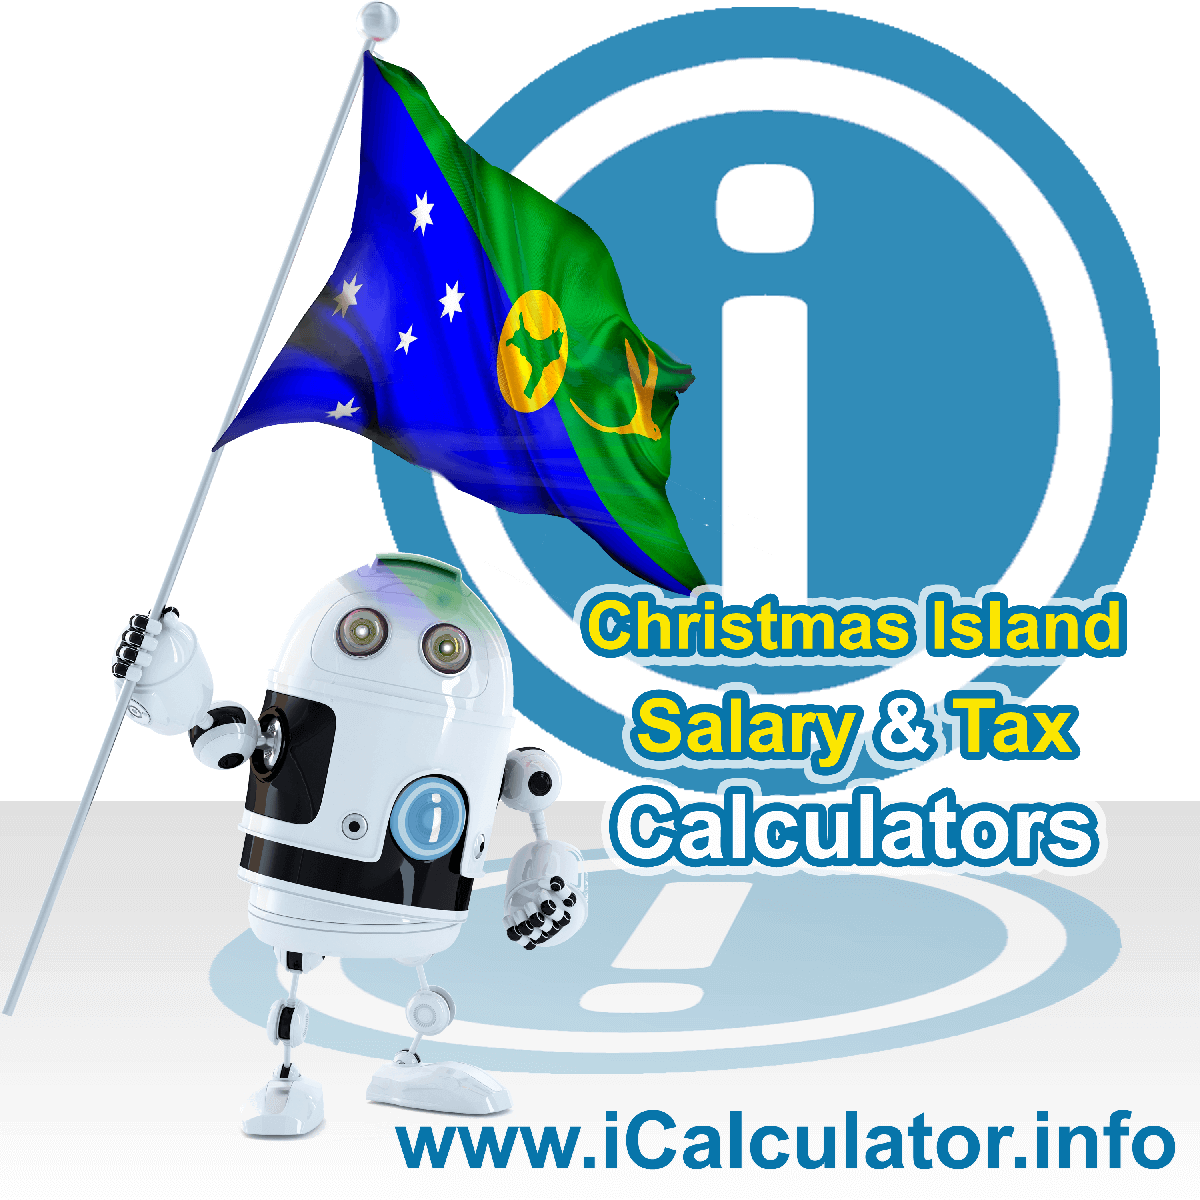 Christmas Island Wage Calculator. This image shows the Christmas Island flag and information relating to the tax formula for the Christmas Island Tax Calculator